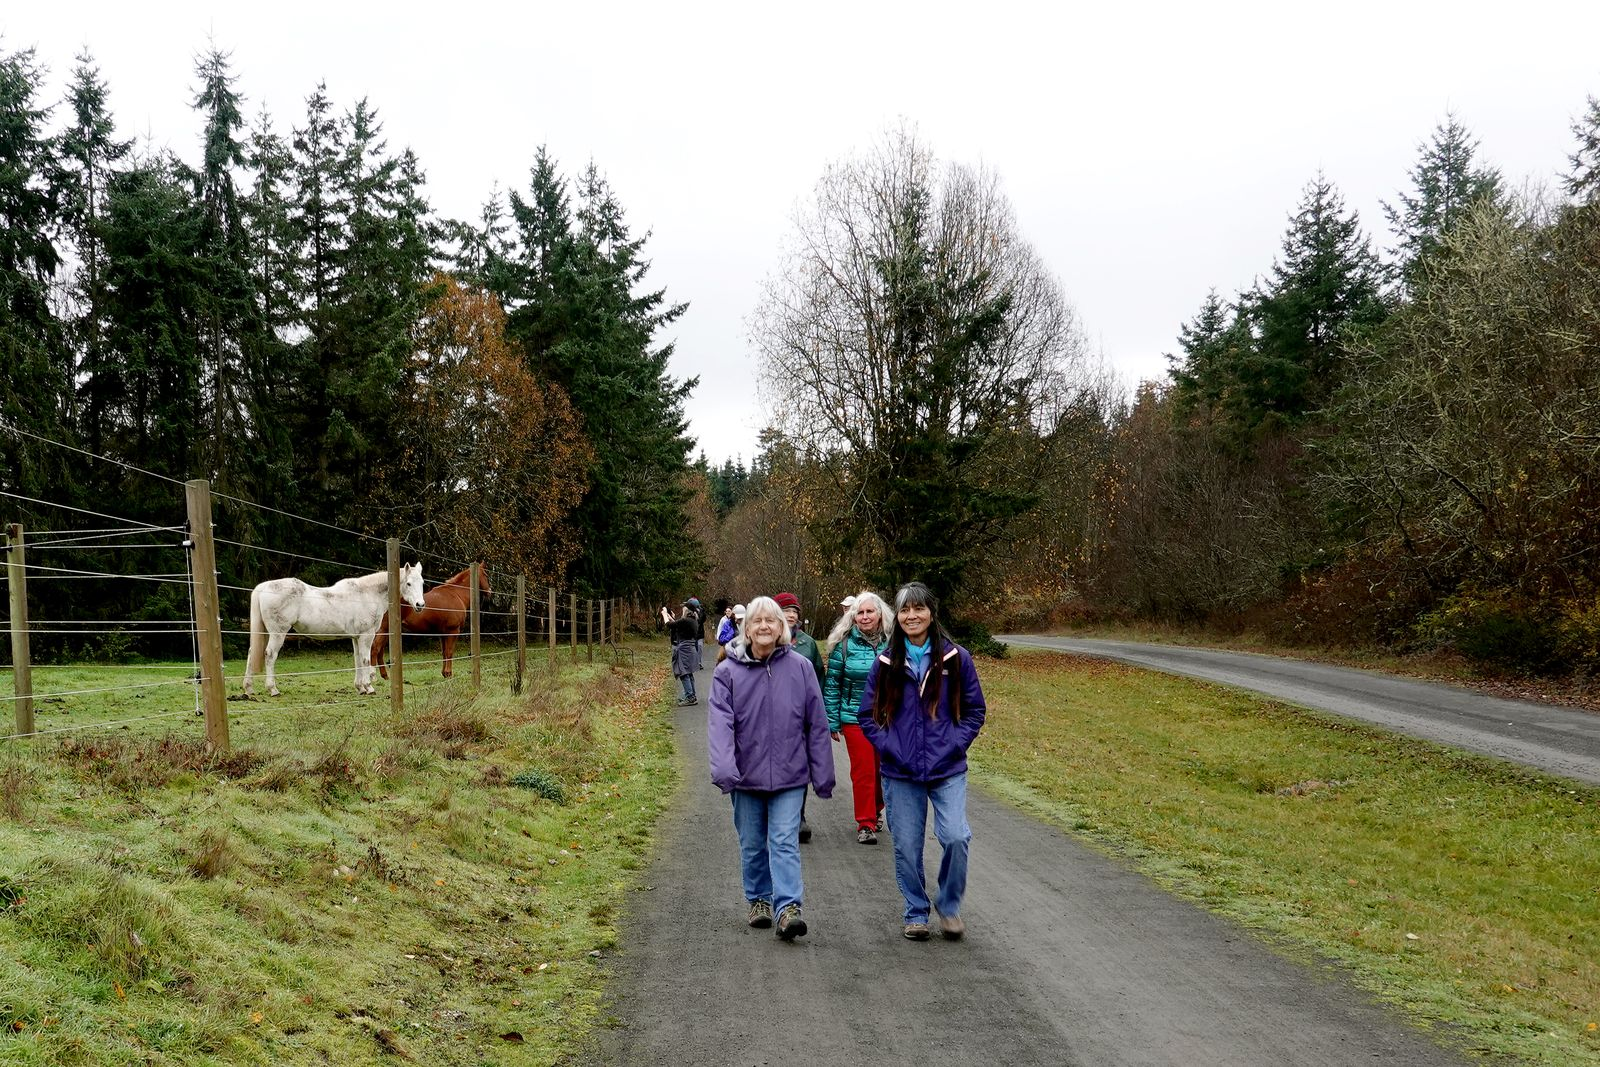 Doreen's type of hike-- she loves horses